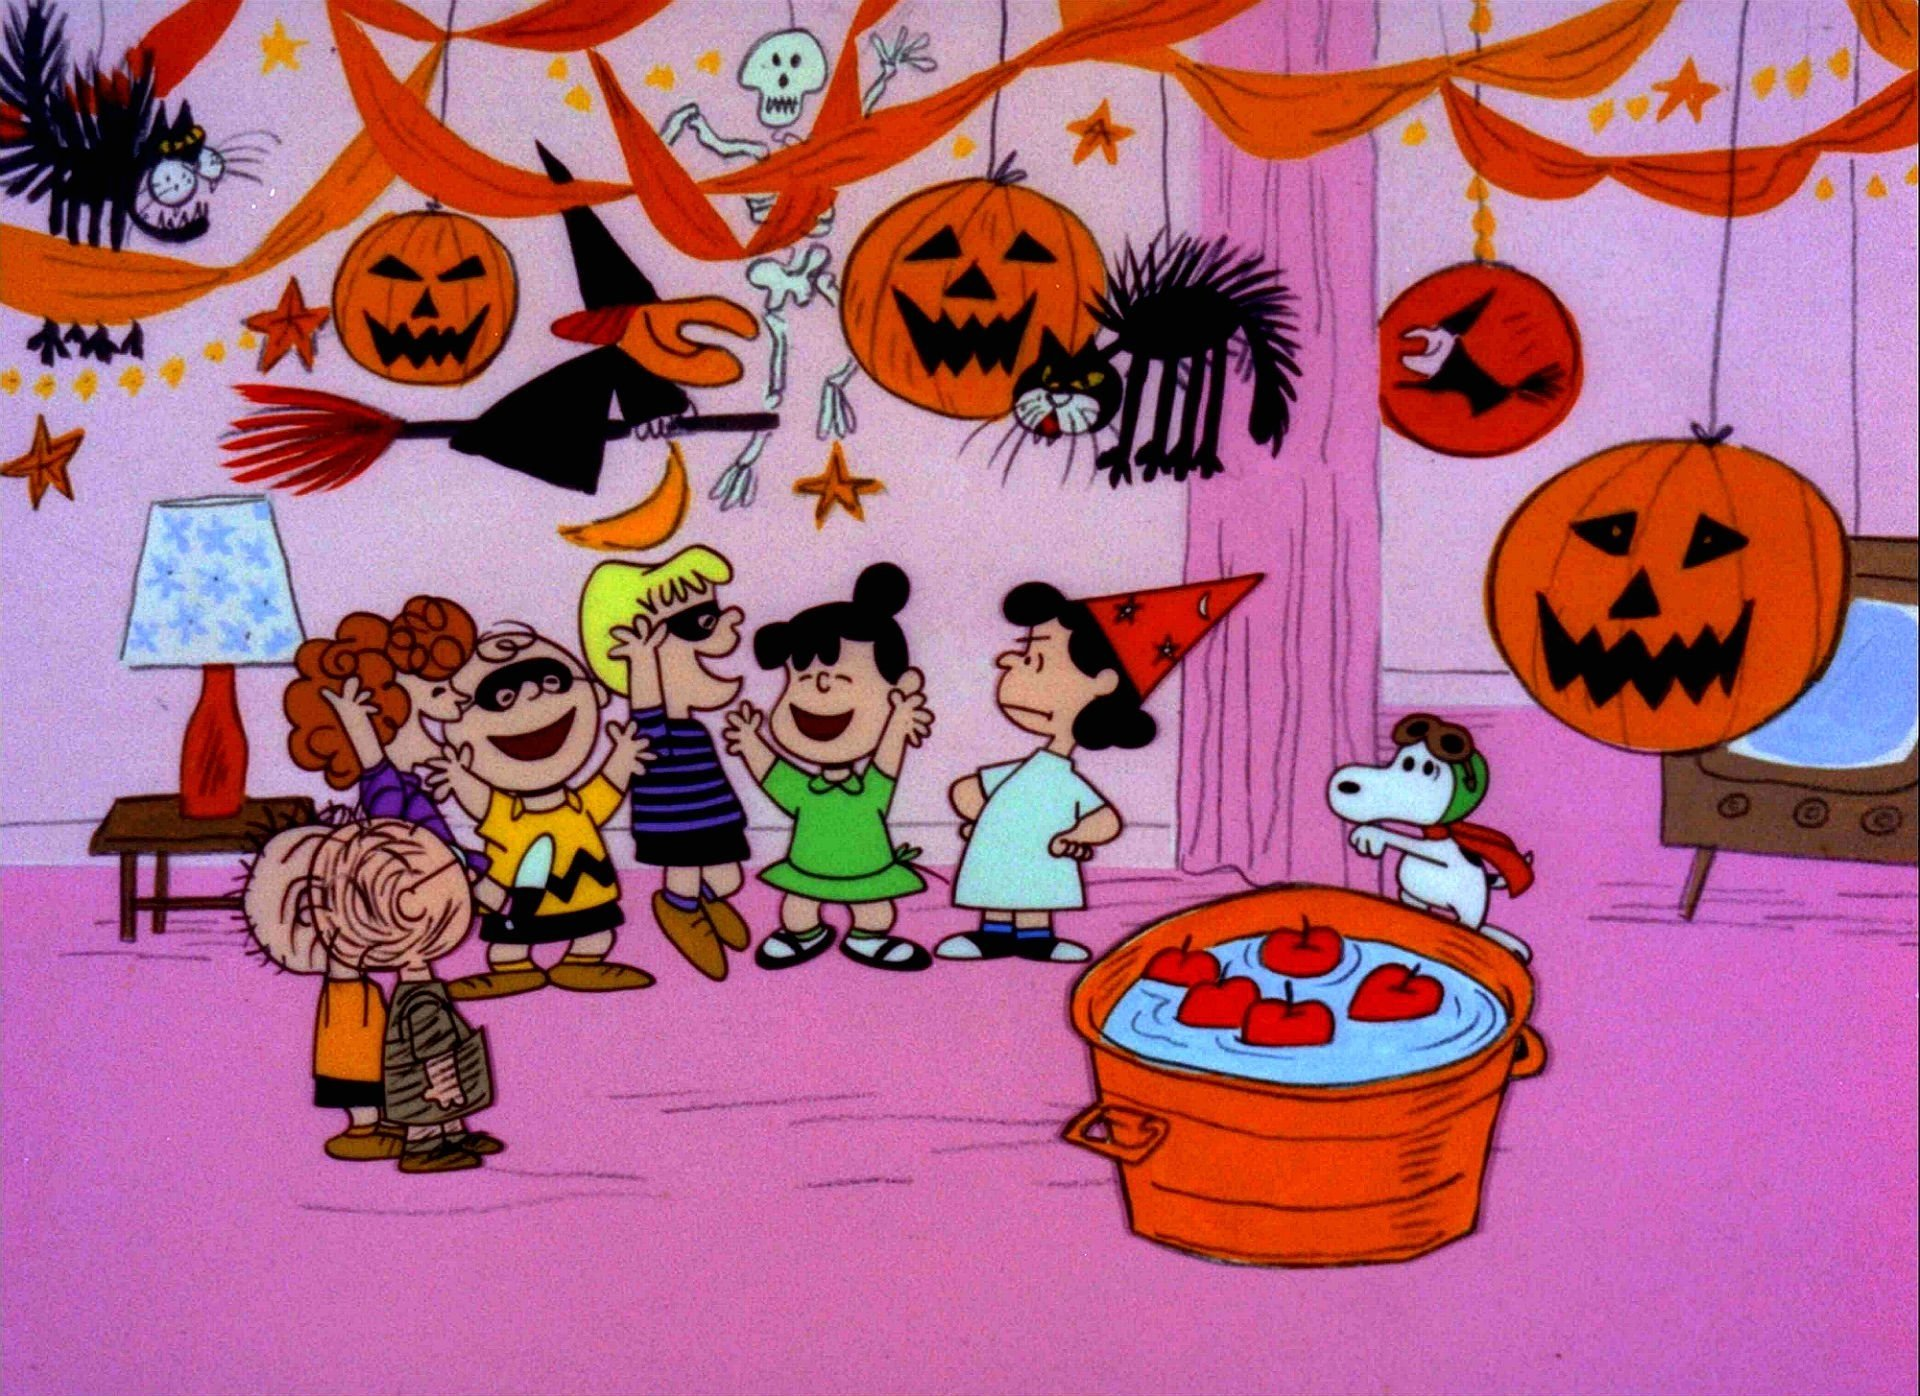 Peanuts Halloween Hd Wallpaper Background Image 1920x1396